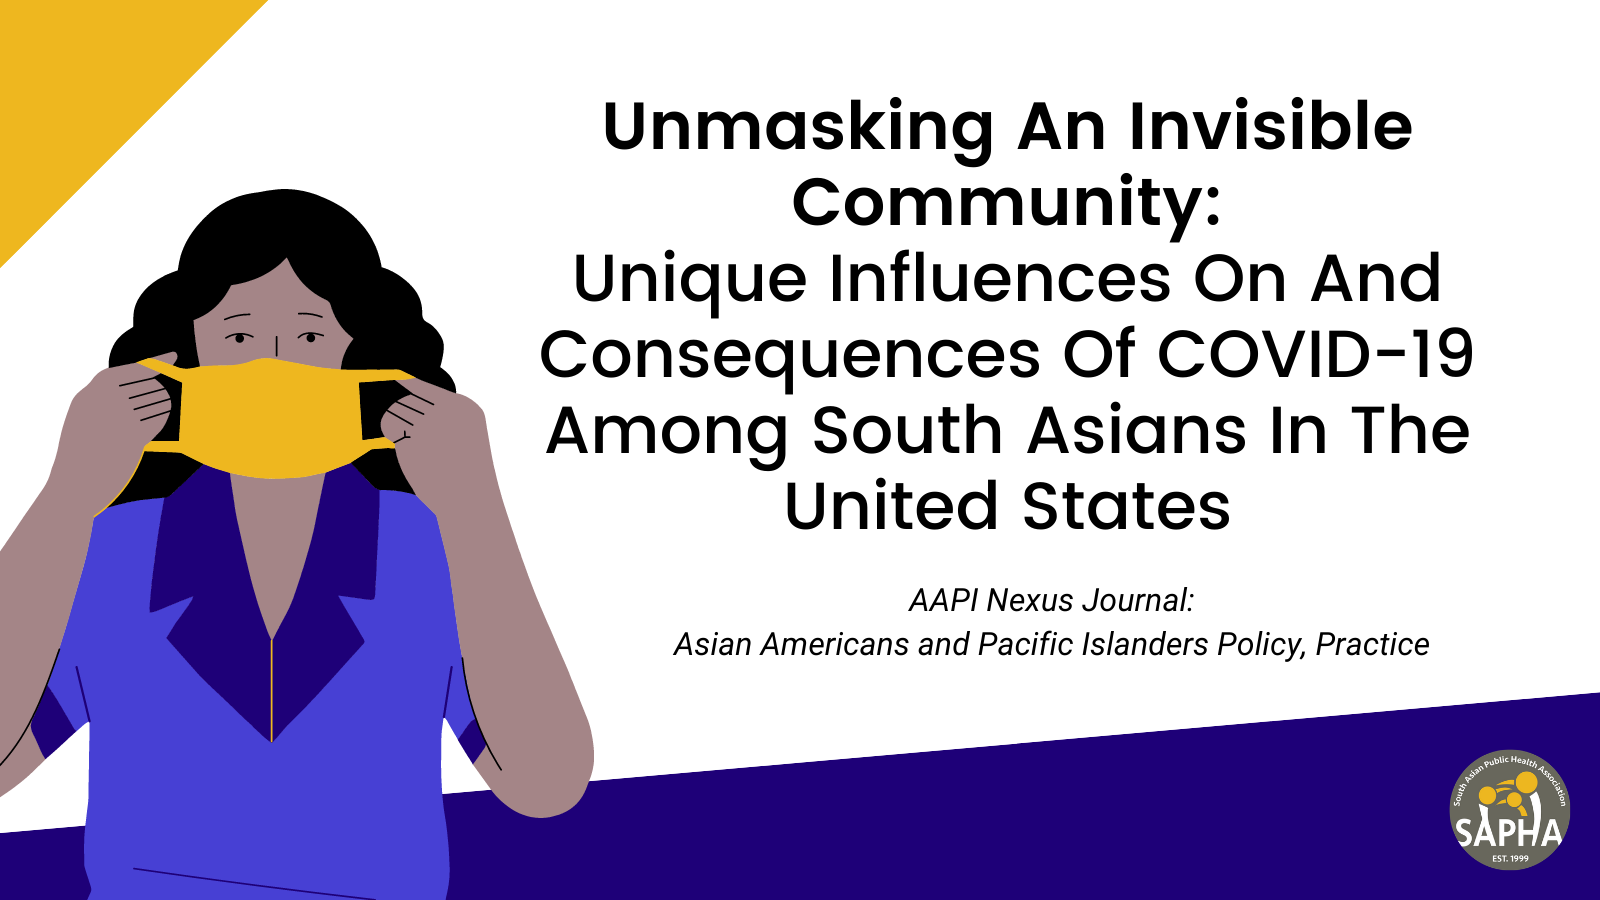 Unmasking an Invisible Community: Unique Influences on and Consequences of COVID-19 among South Asians in the United States